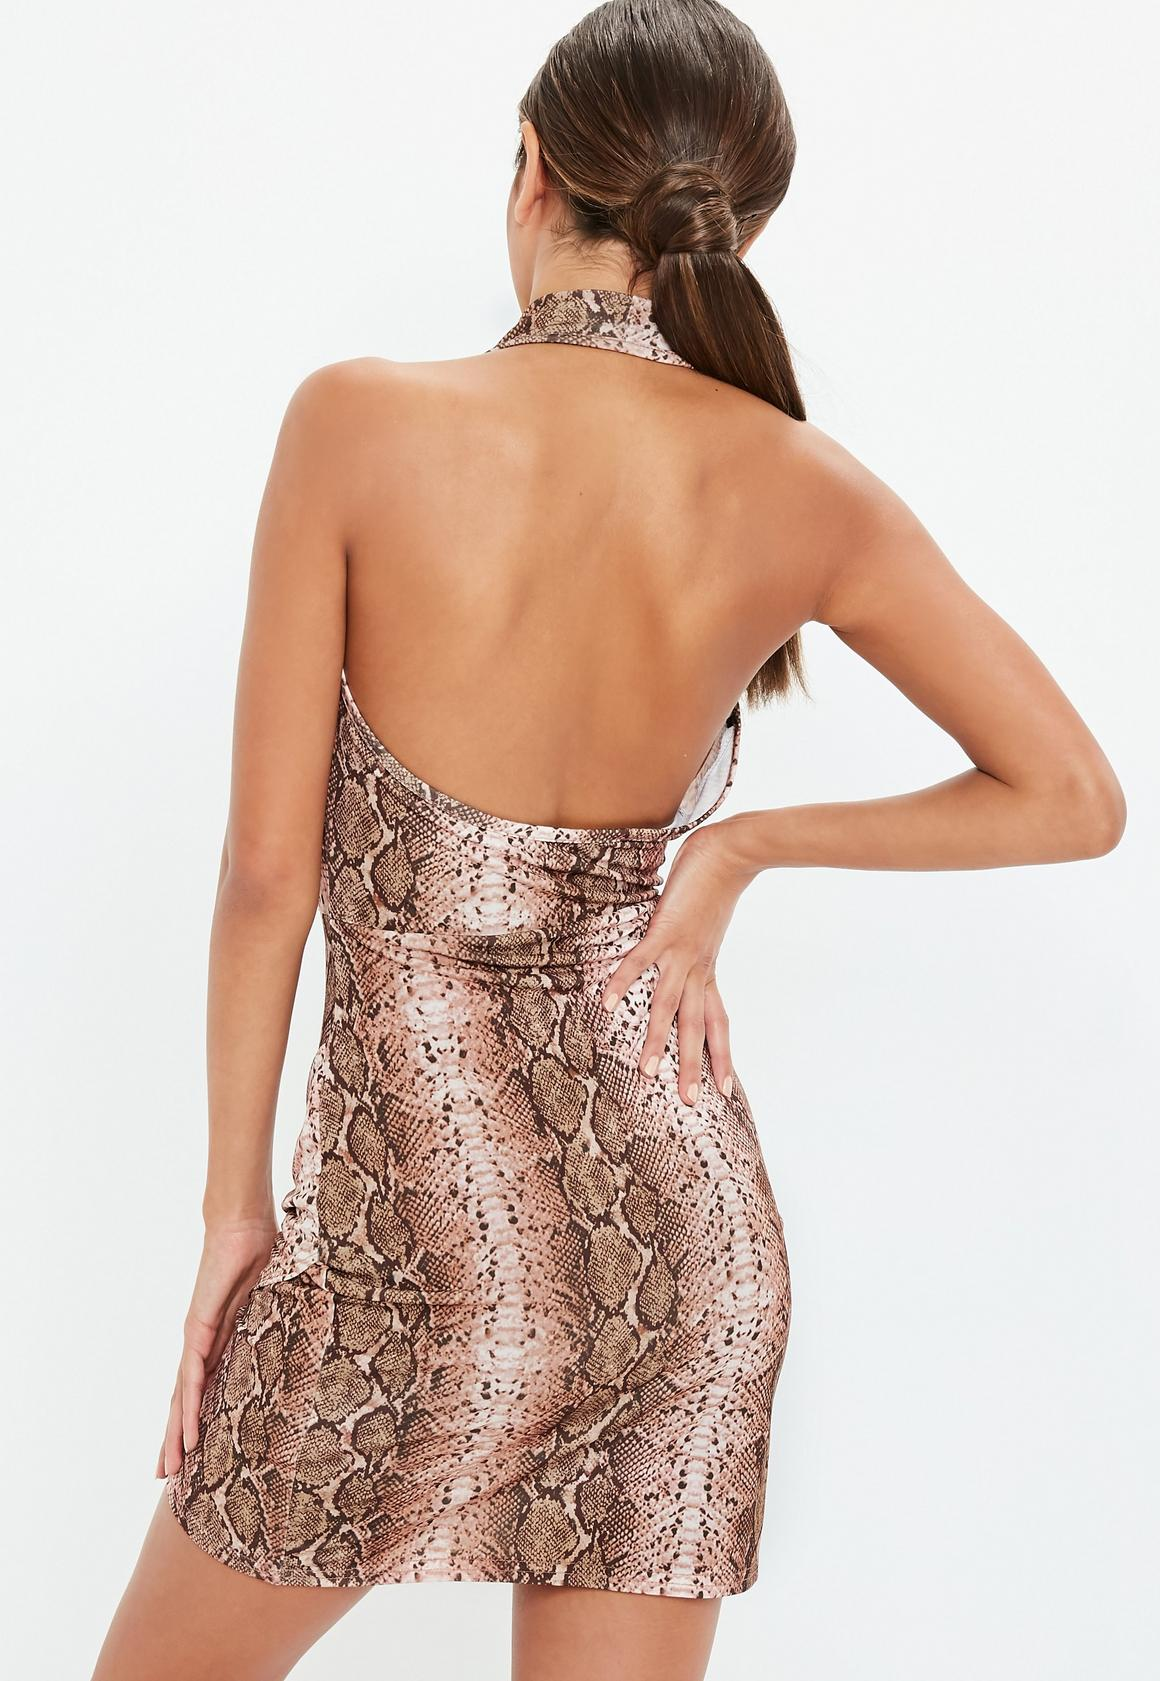 Missguided - robe dos-nu courte marron à imprimé serpent - 4